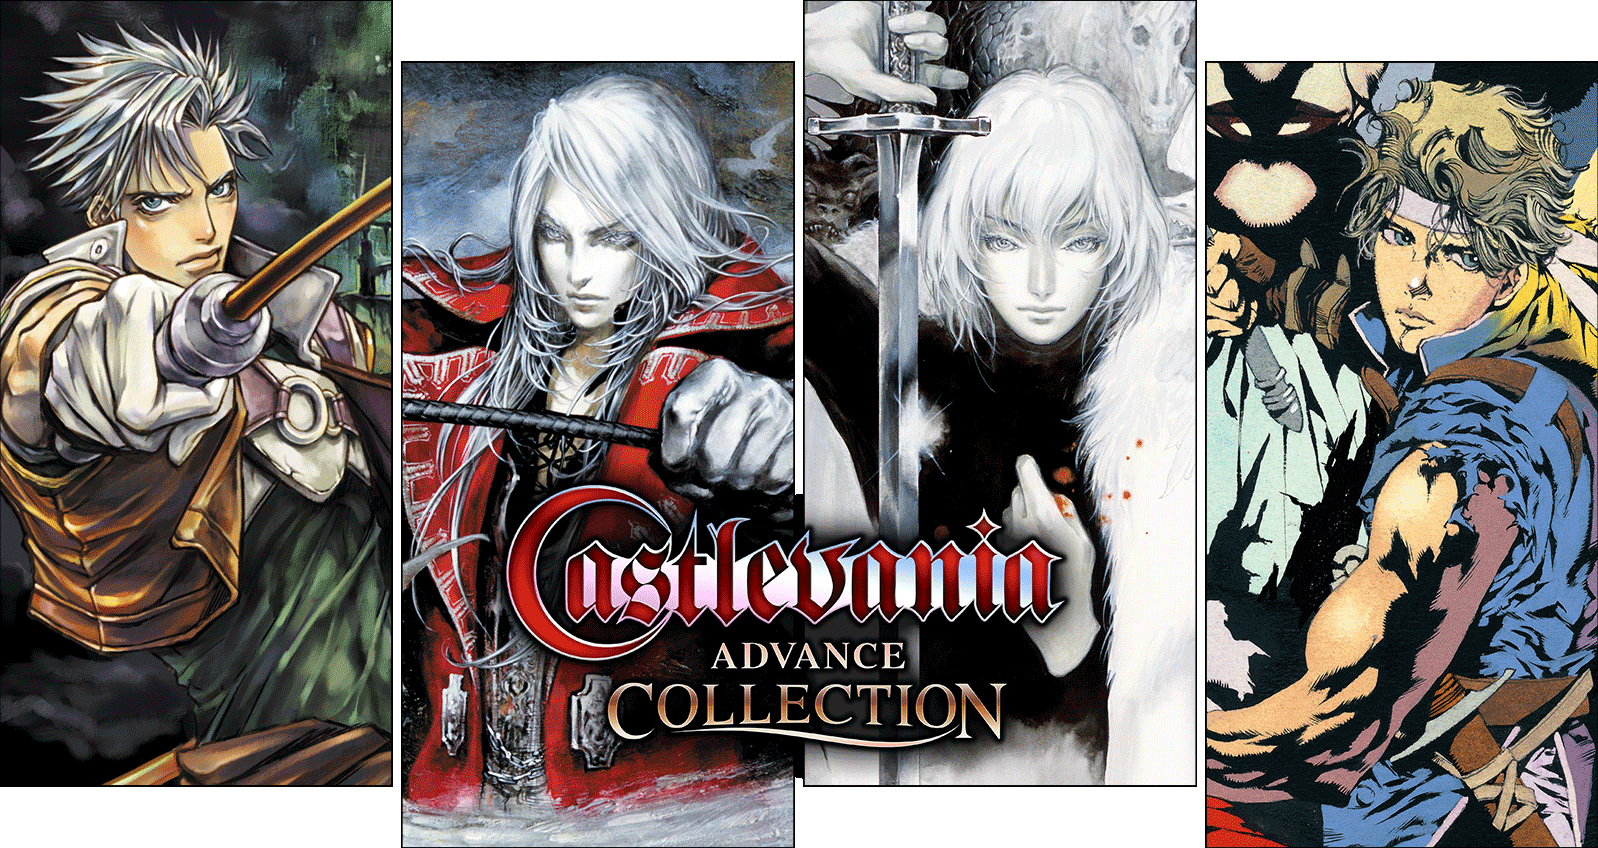 https://img.konami.com/games/castlevania/advance_collection/s/images/mainv_pc.png